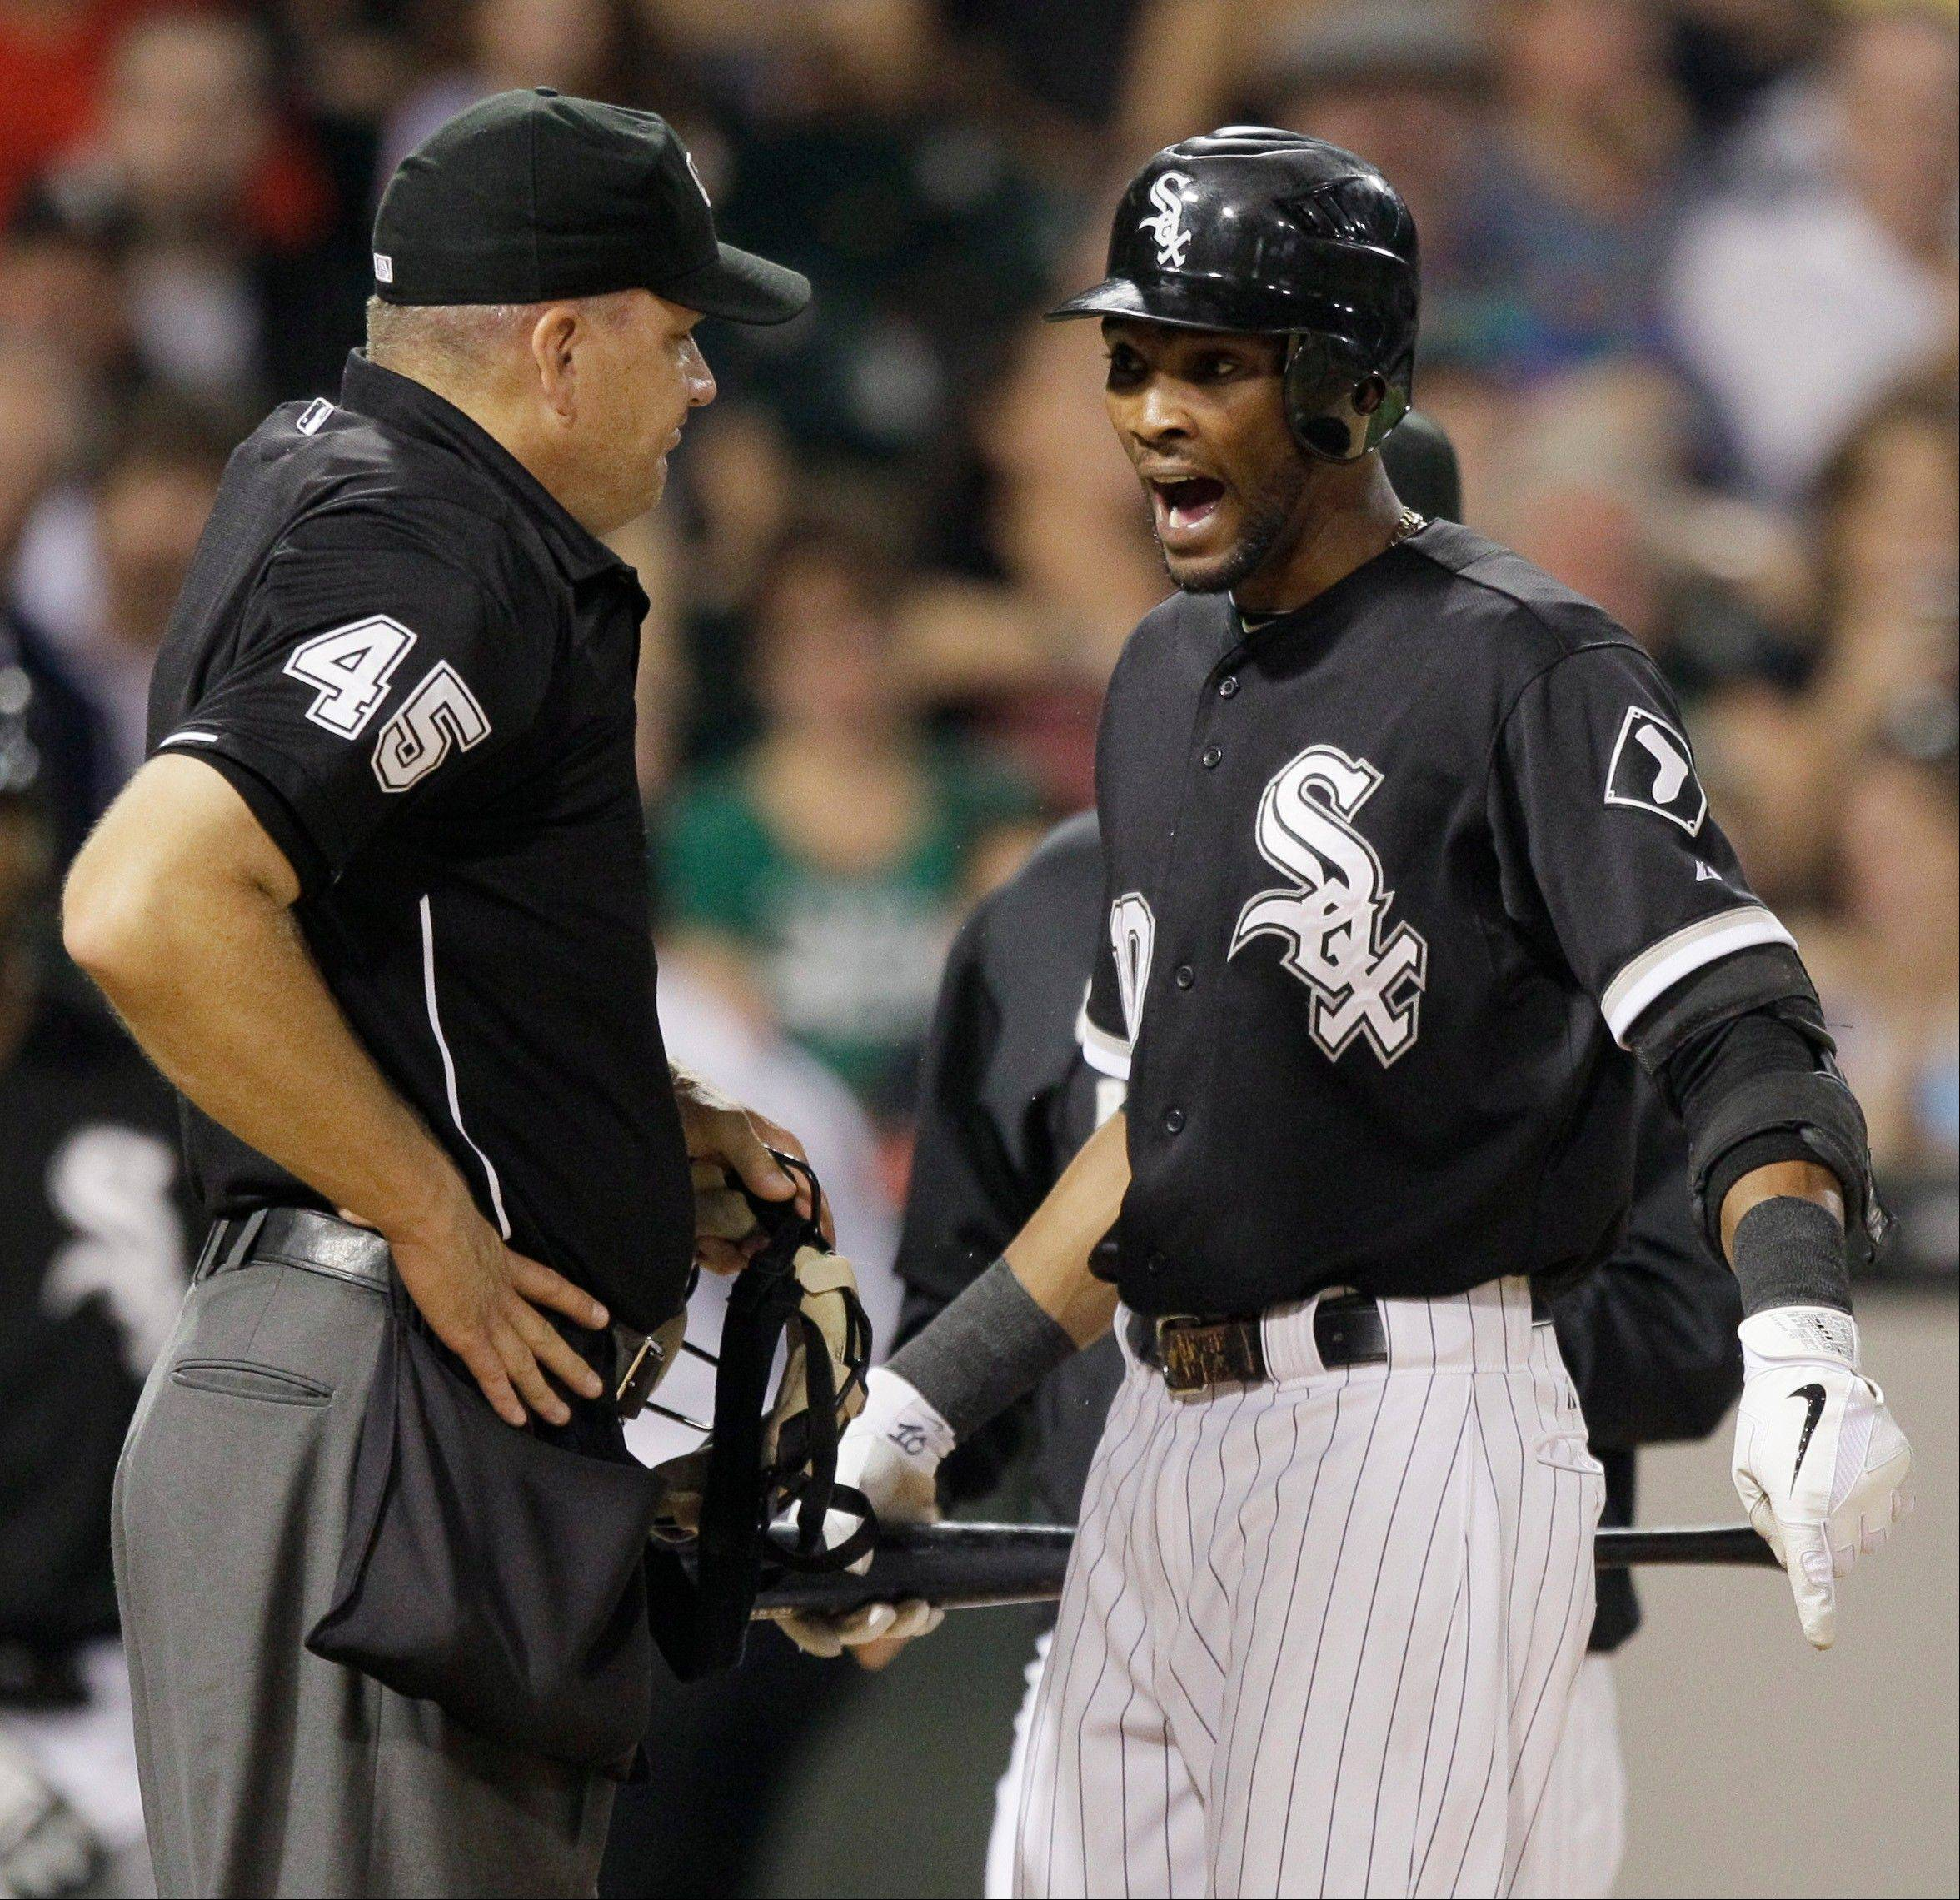 Chicago White Sox's Alexei Ramirez, right, argues with home plate umpire Jeff Nelson during the eighth inning against the Texas Rangers in Chicago. Ramirez was ejected by Nelson.